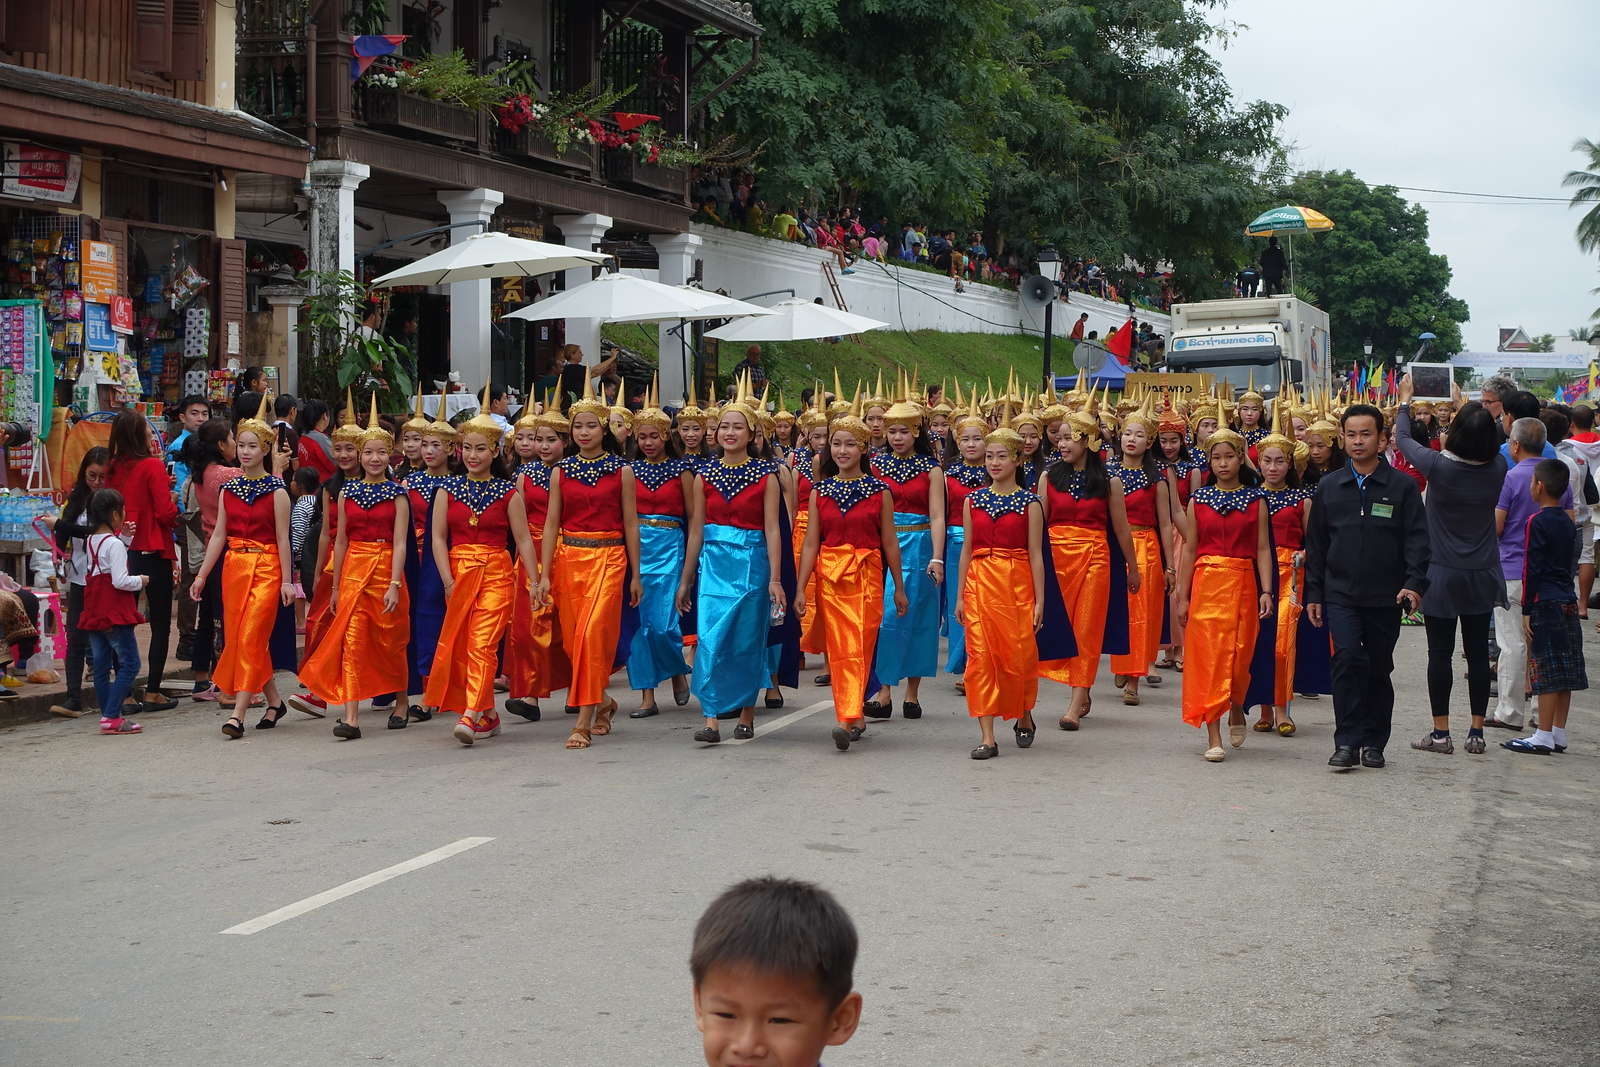 Luang Prabang 20th Anniversary UNESCO World Heritage Parade